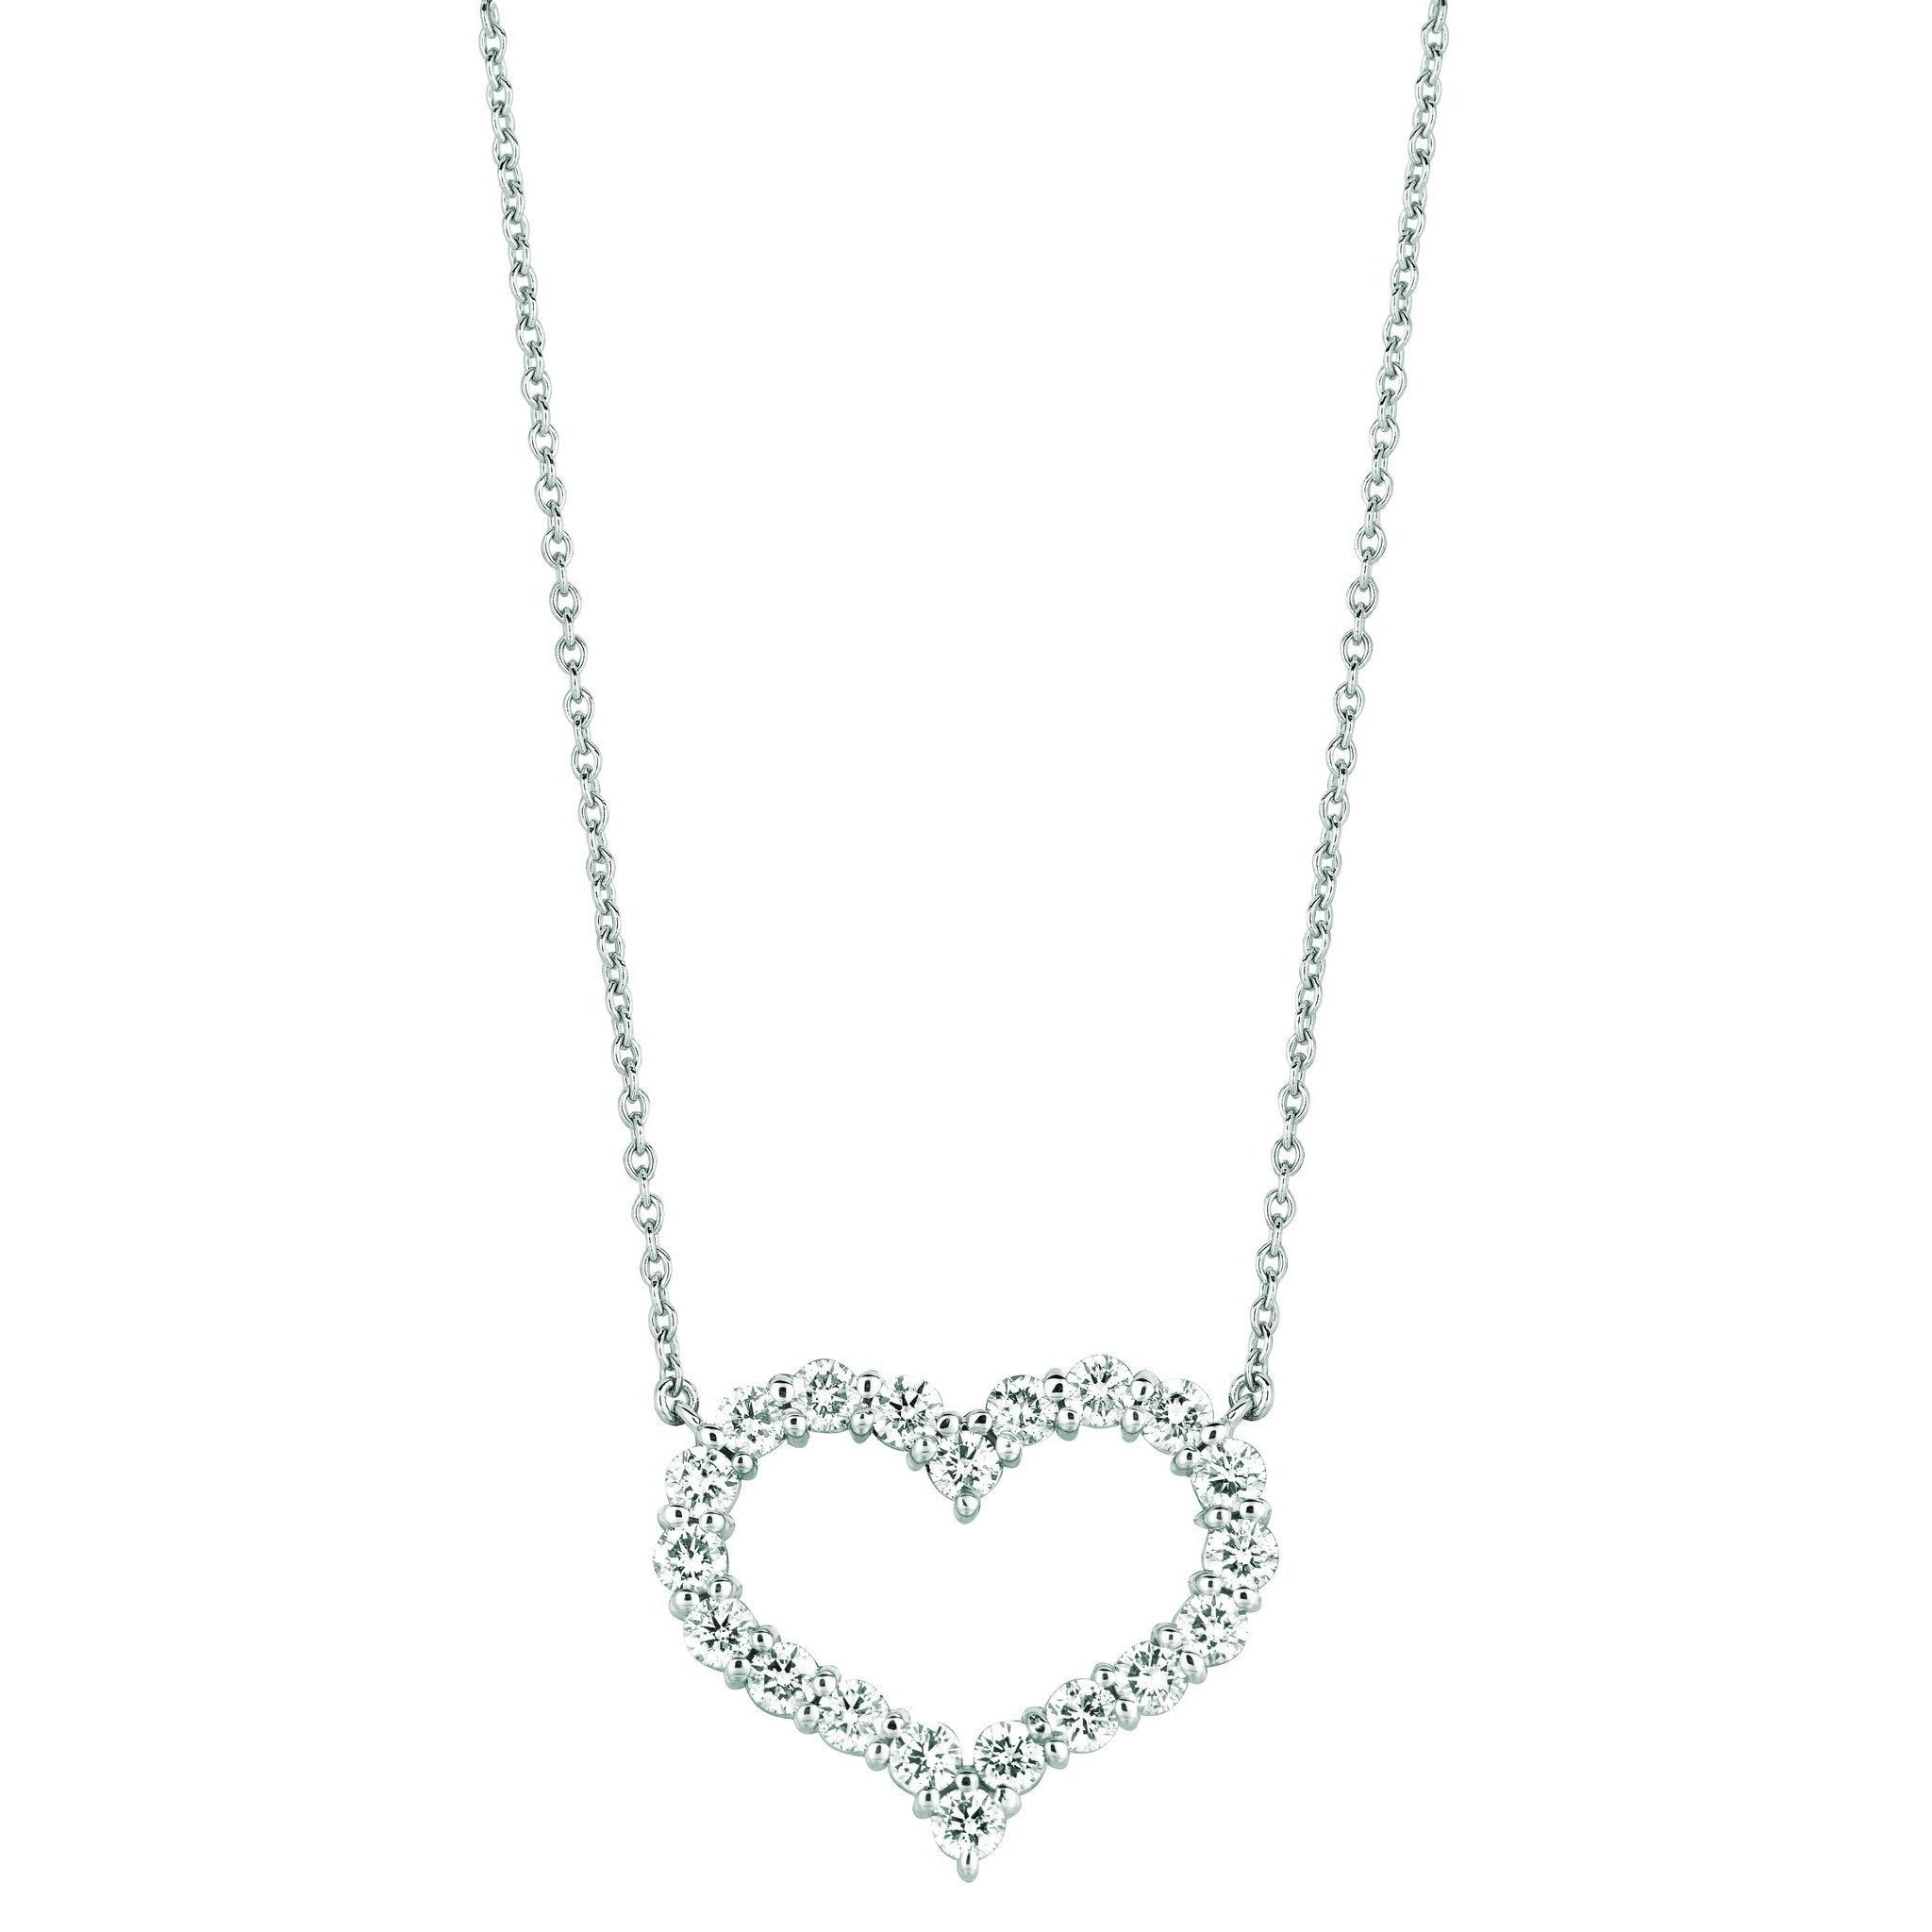 Diamond Heart Necklace Pendant 3.08 Carats 14K White Pendant